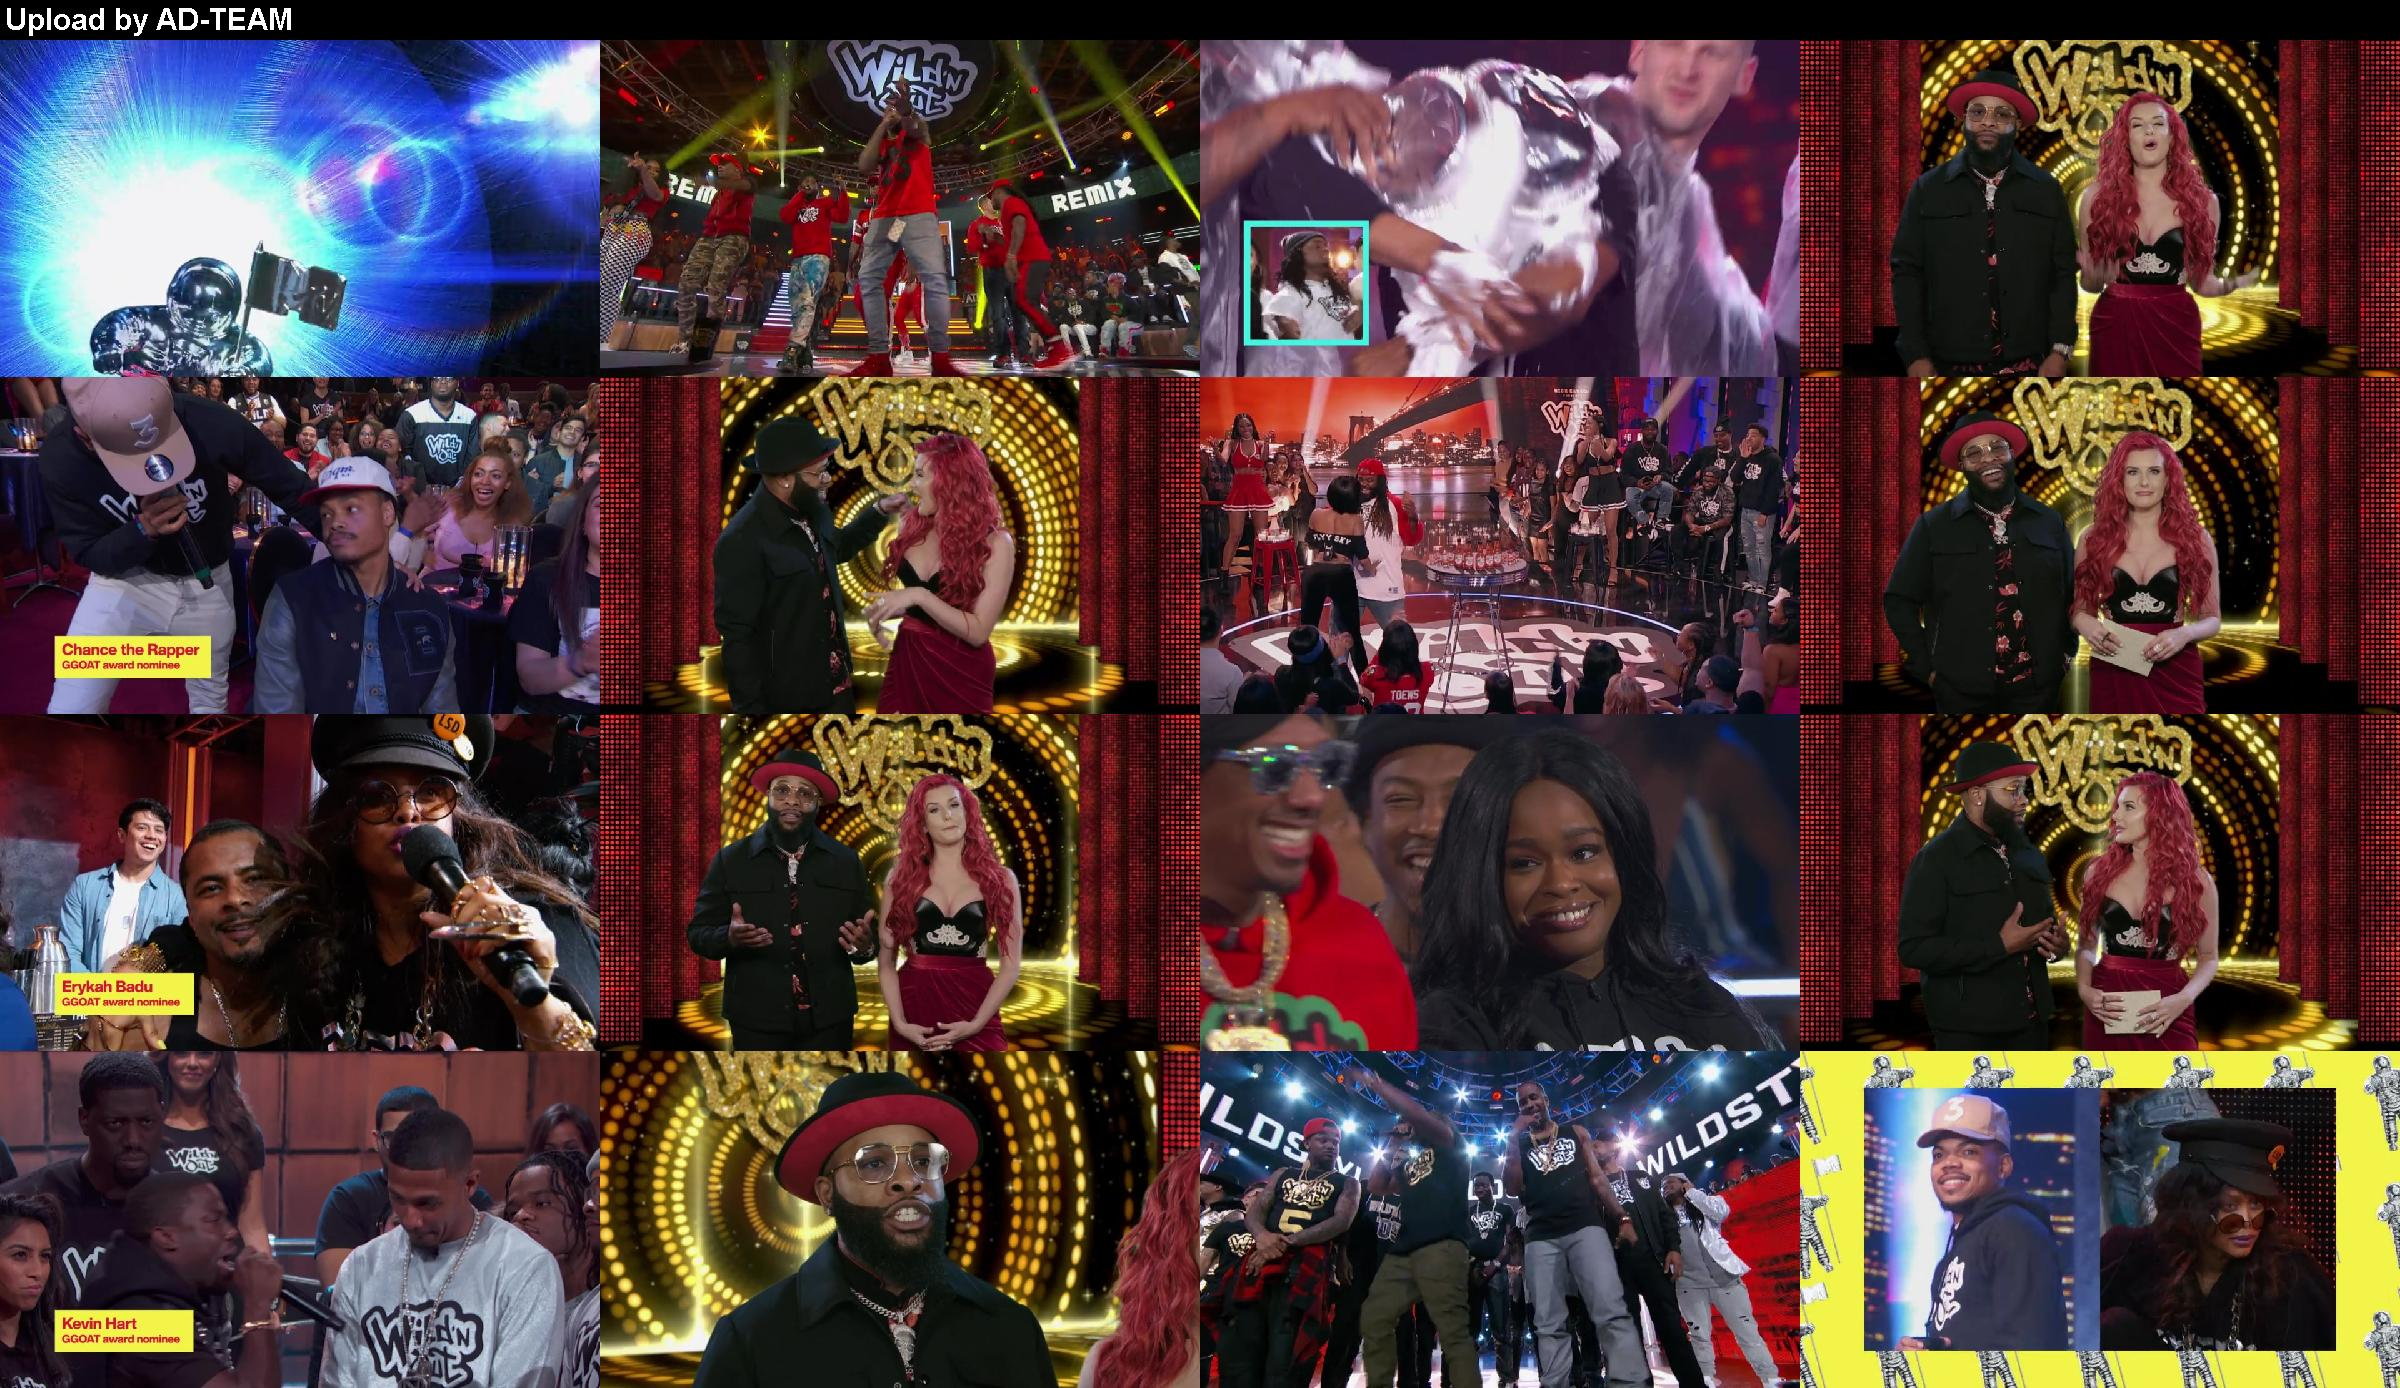 Nick Cannon Presents Wild N Out S14e00 Wildest Moments Awards A Vma Special Web X2...